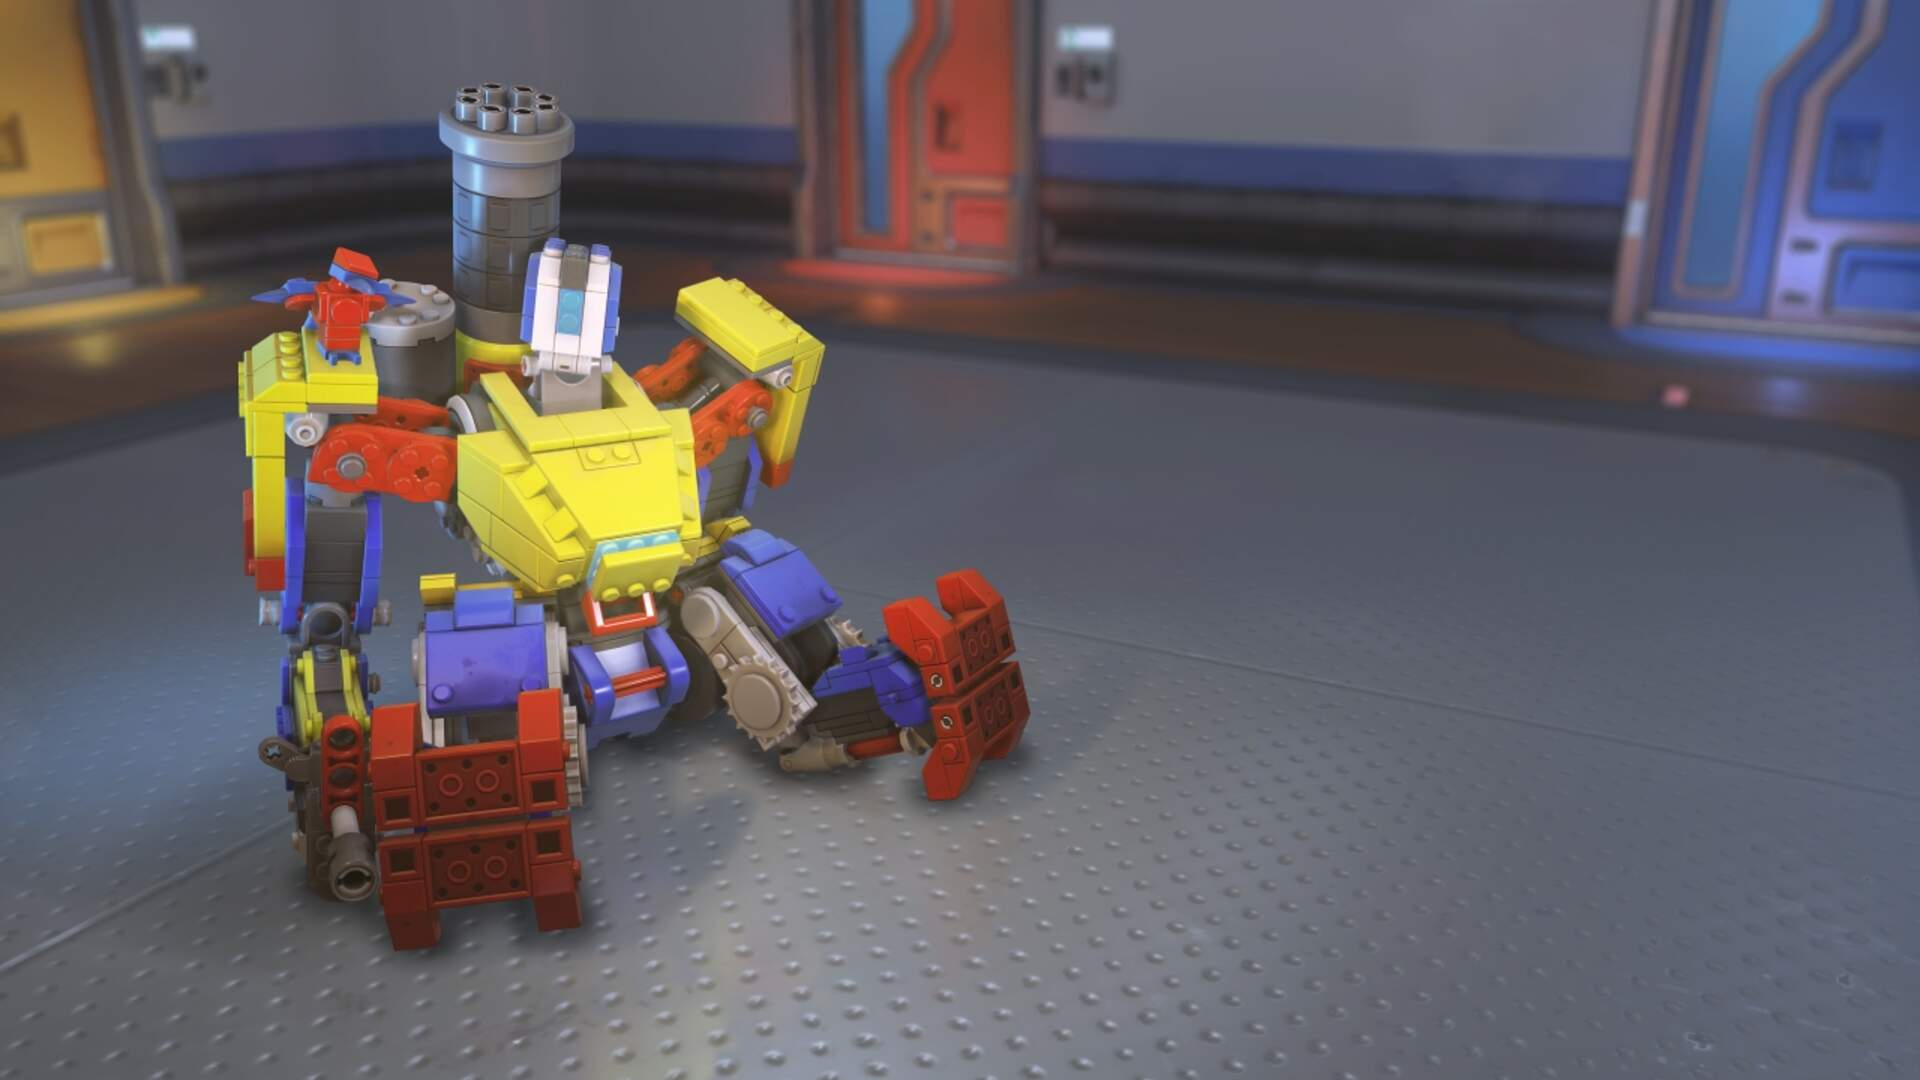 Overwatch's Bastion Gets an Adorable Lego Skin for New Event